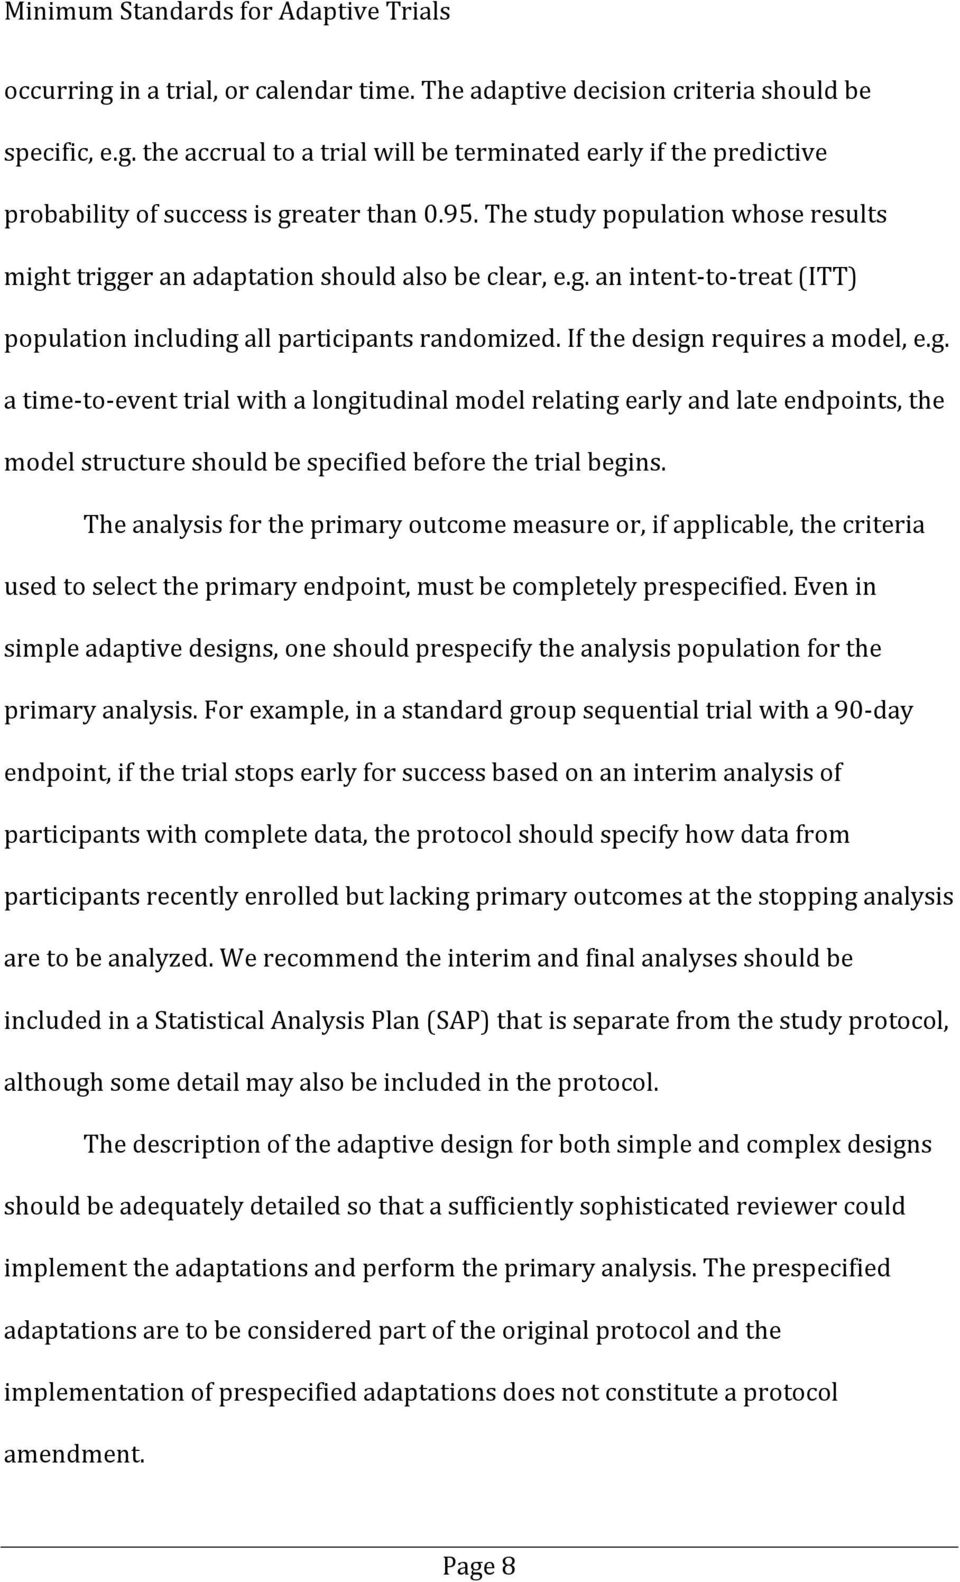 If the design requires a model, e.g. a time-to-event trial with a longitudinal model relating early and late endpoints, the model structure should be specified before the trial begins.